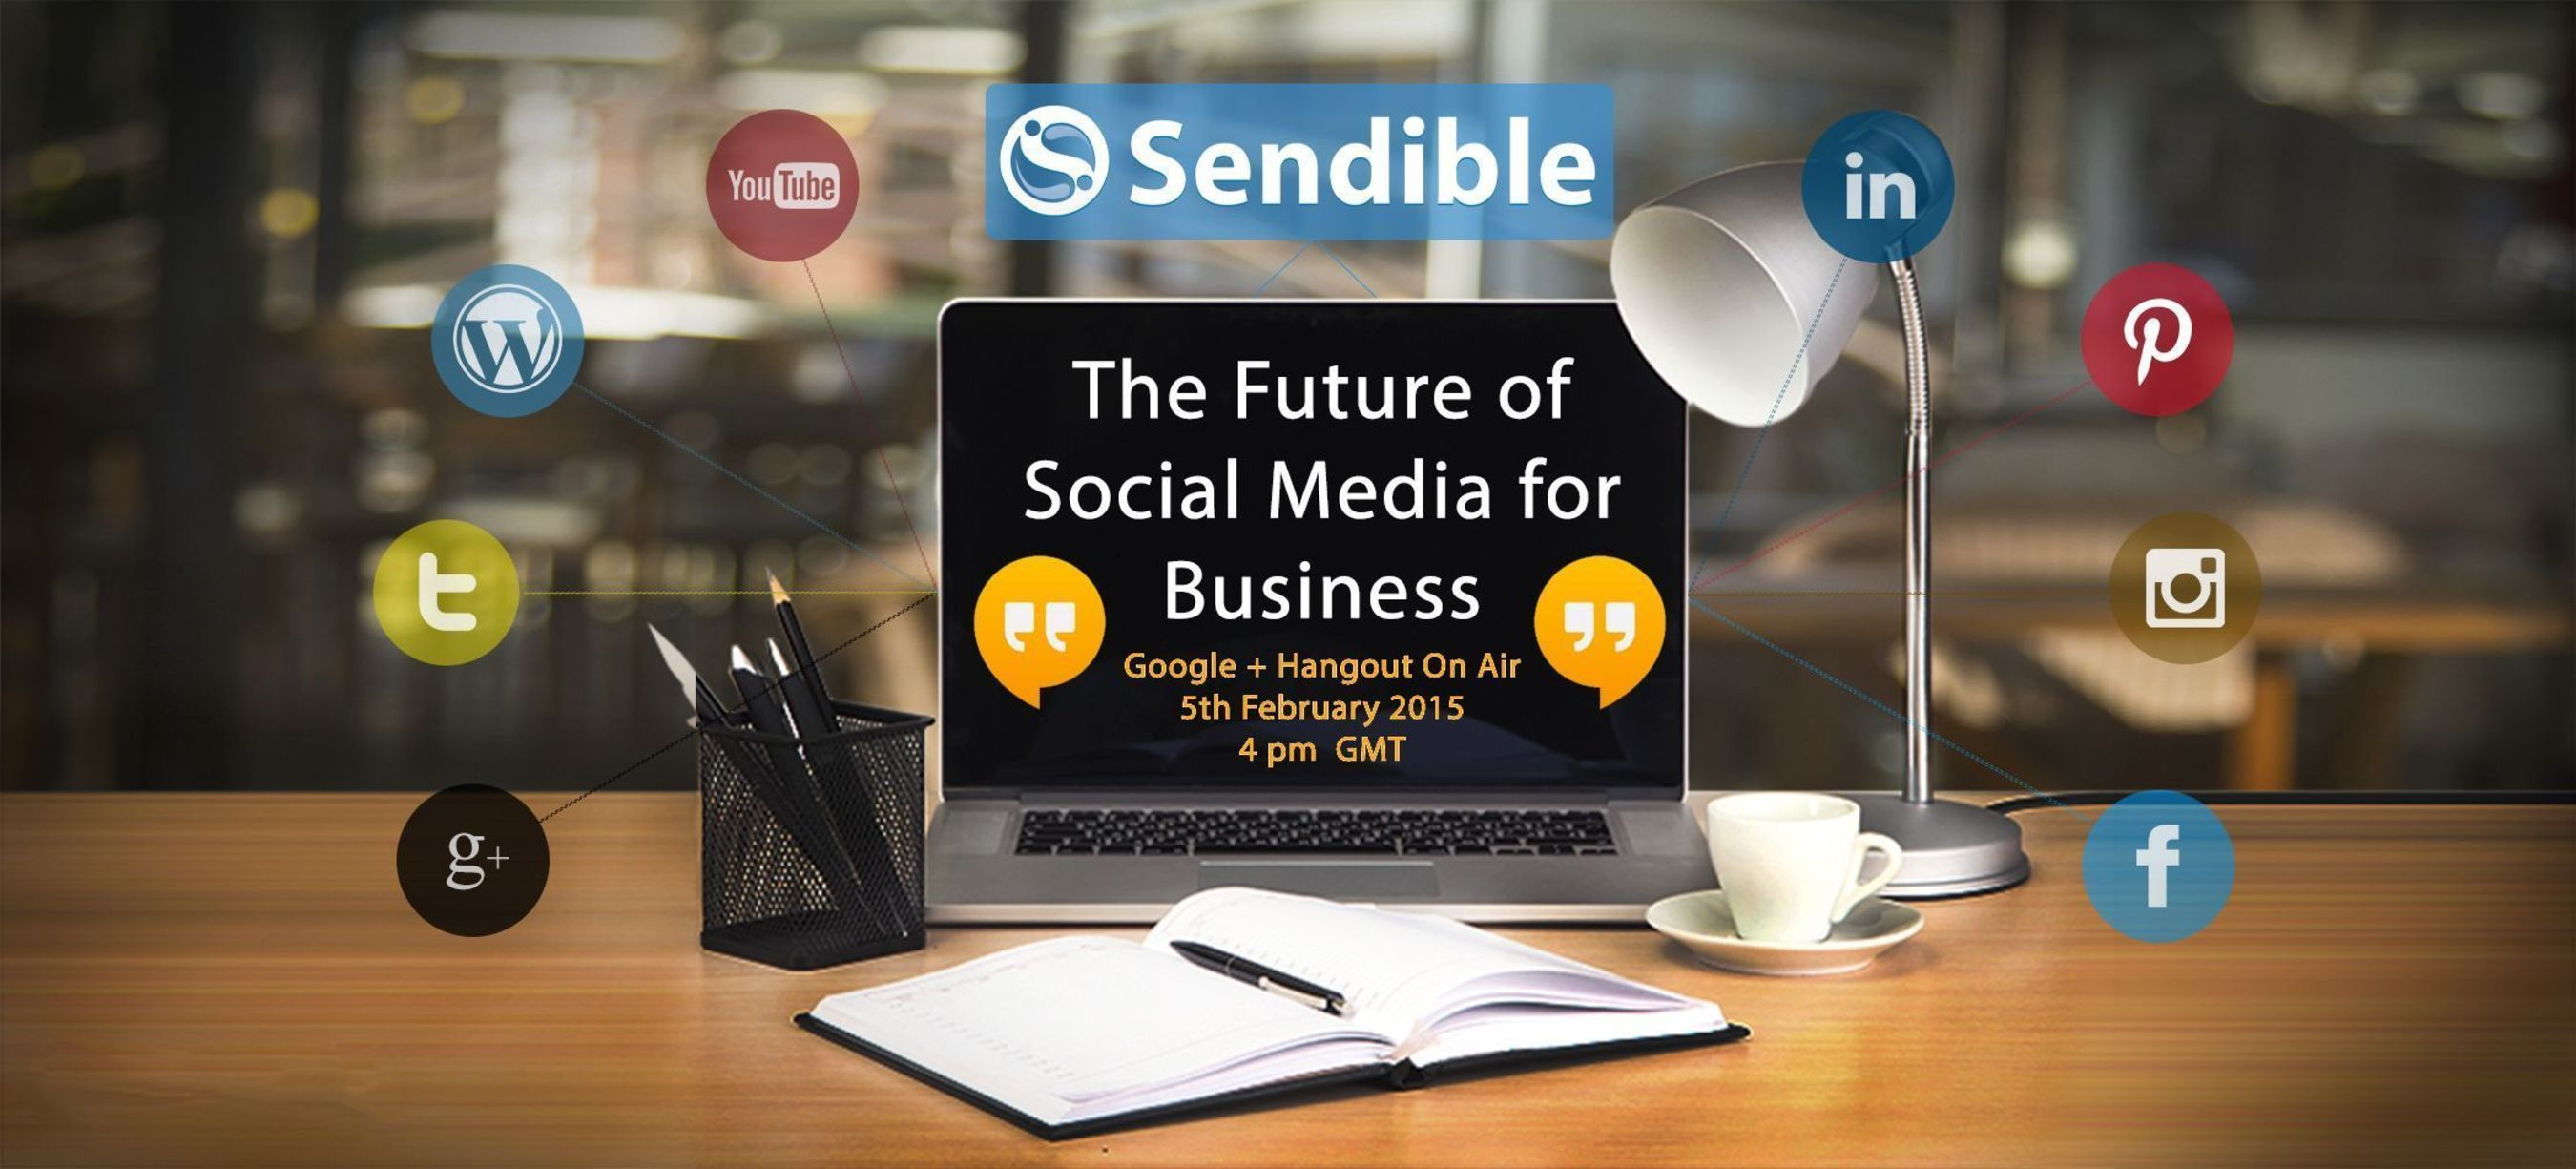 The Future of Social Media for Business is a live online event being hosted by Sendible the leading social media management solution provider. The event will bring together leaders from the world of social media and marketing to discuss what the future holds for social media for business, being held on 5th Feb 2015 at 16:00 GMT. Register at www.sendible.com/FSMB2015 (PRNewsFoto/Sendible Ltd_)